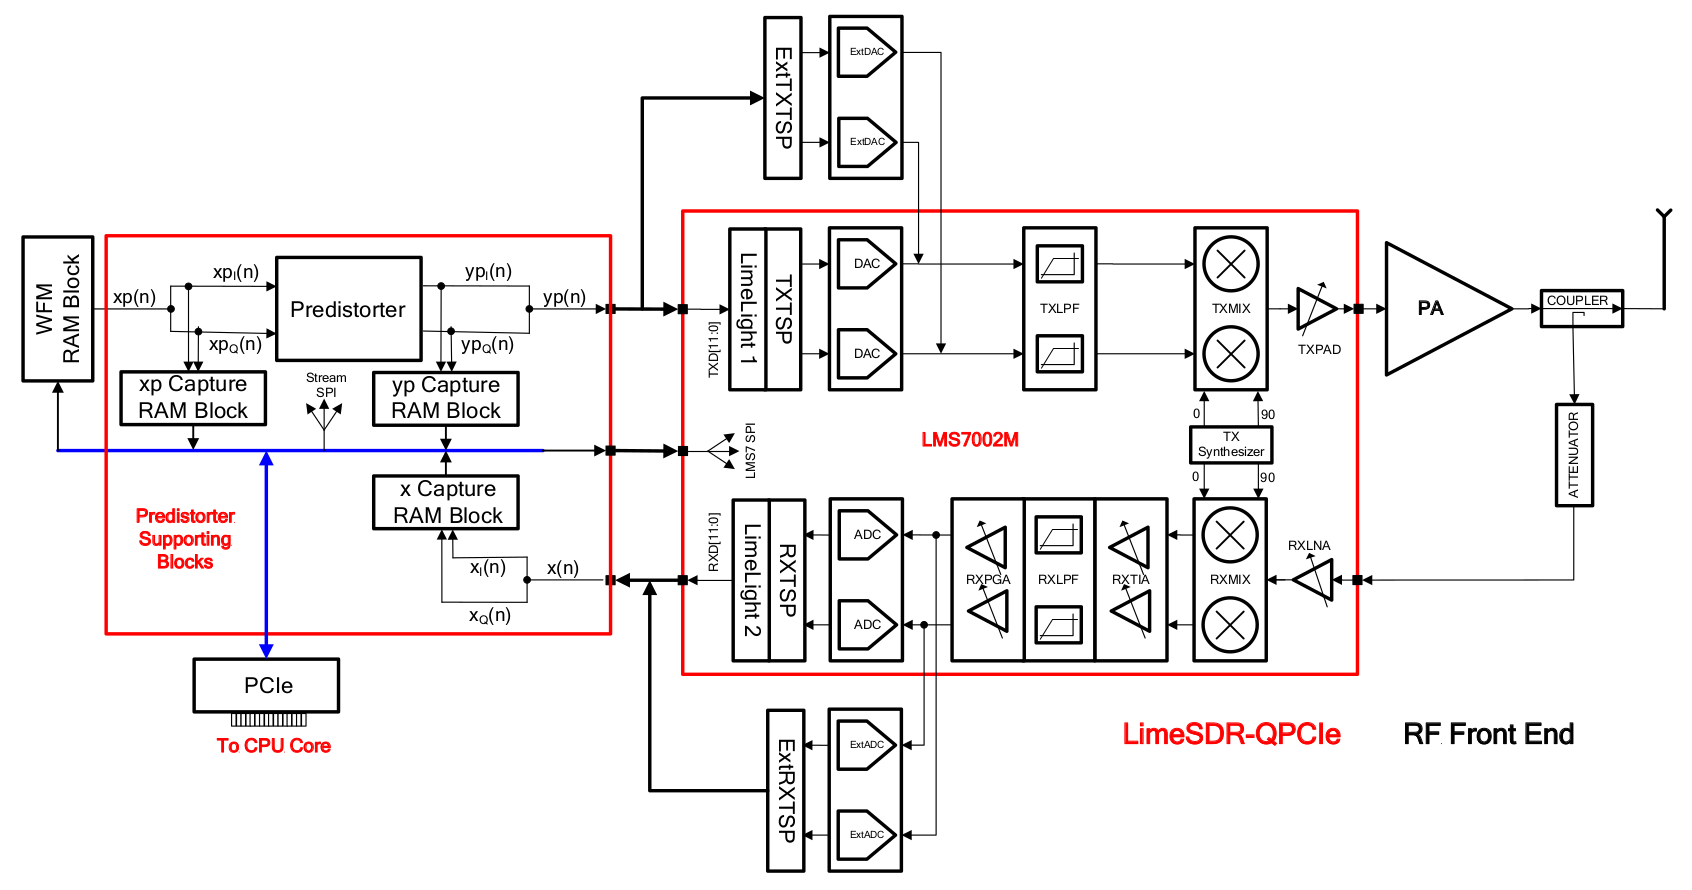 Adpd-implementation-on-limesdr-qpcie-board-block-diagram